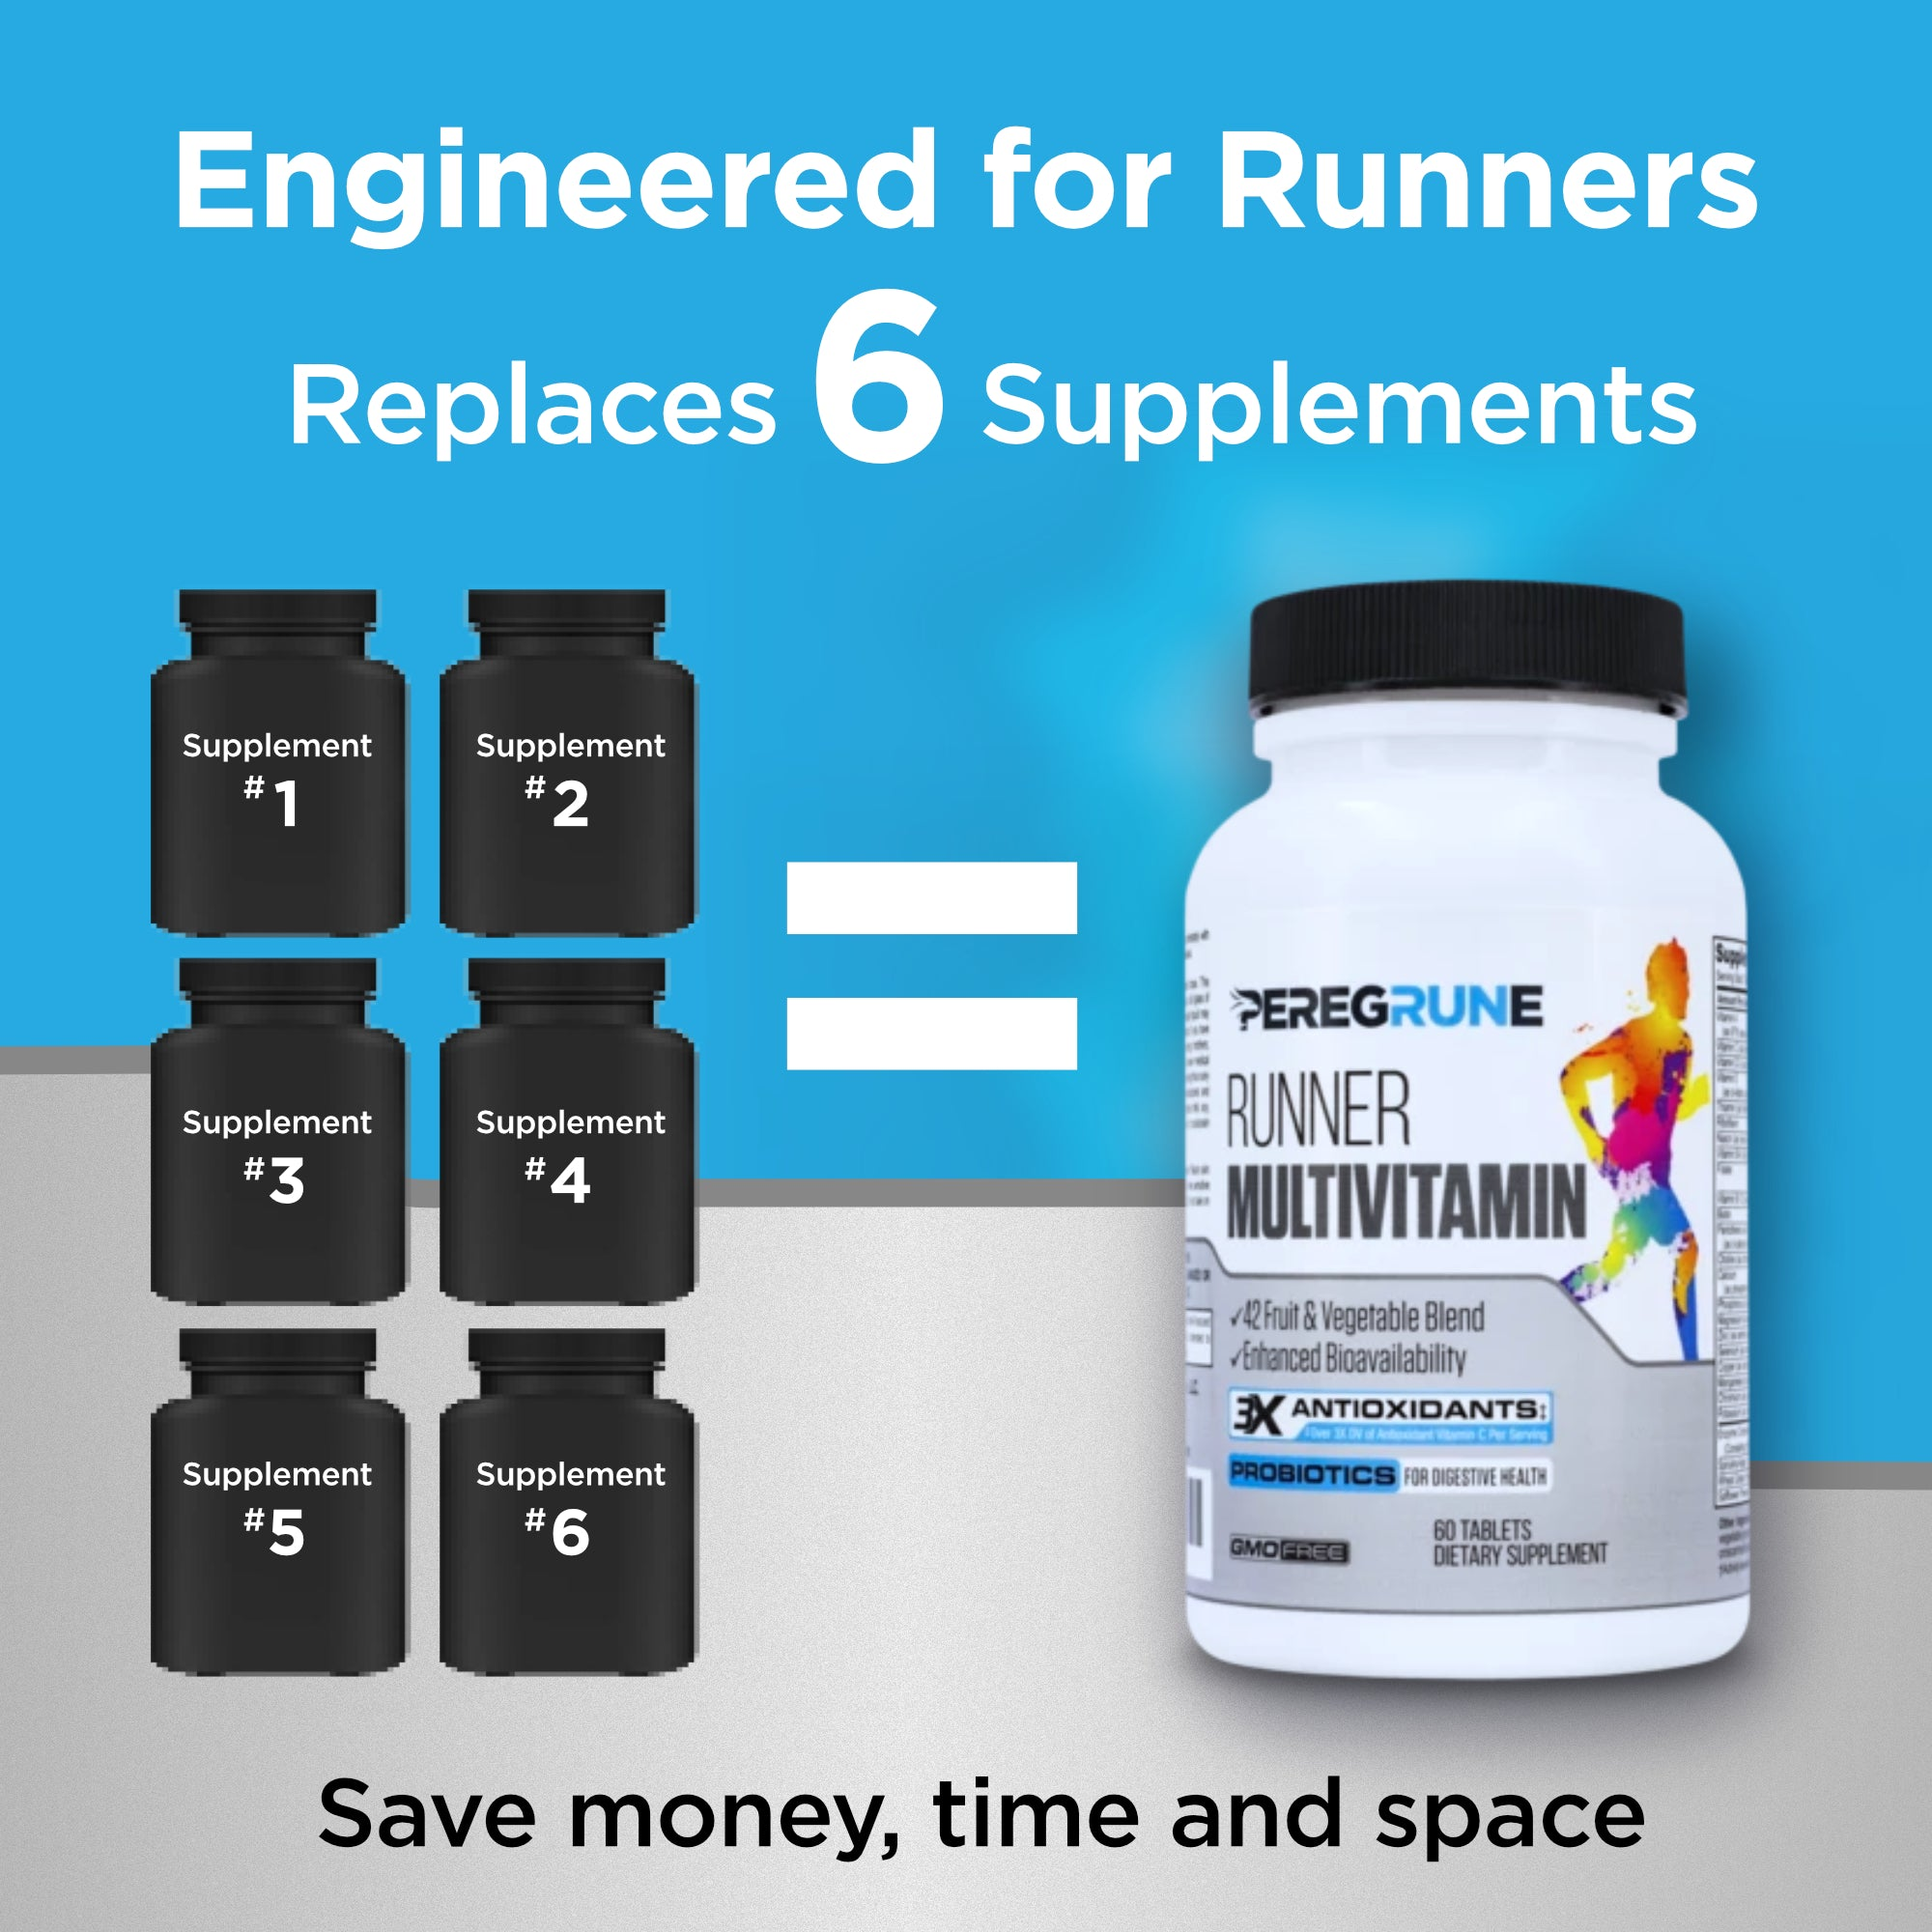 Runner Multivitamin & Joint Support Bundle